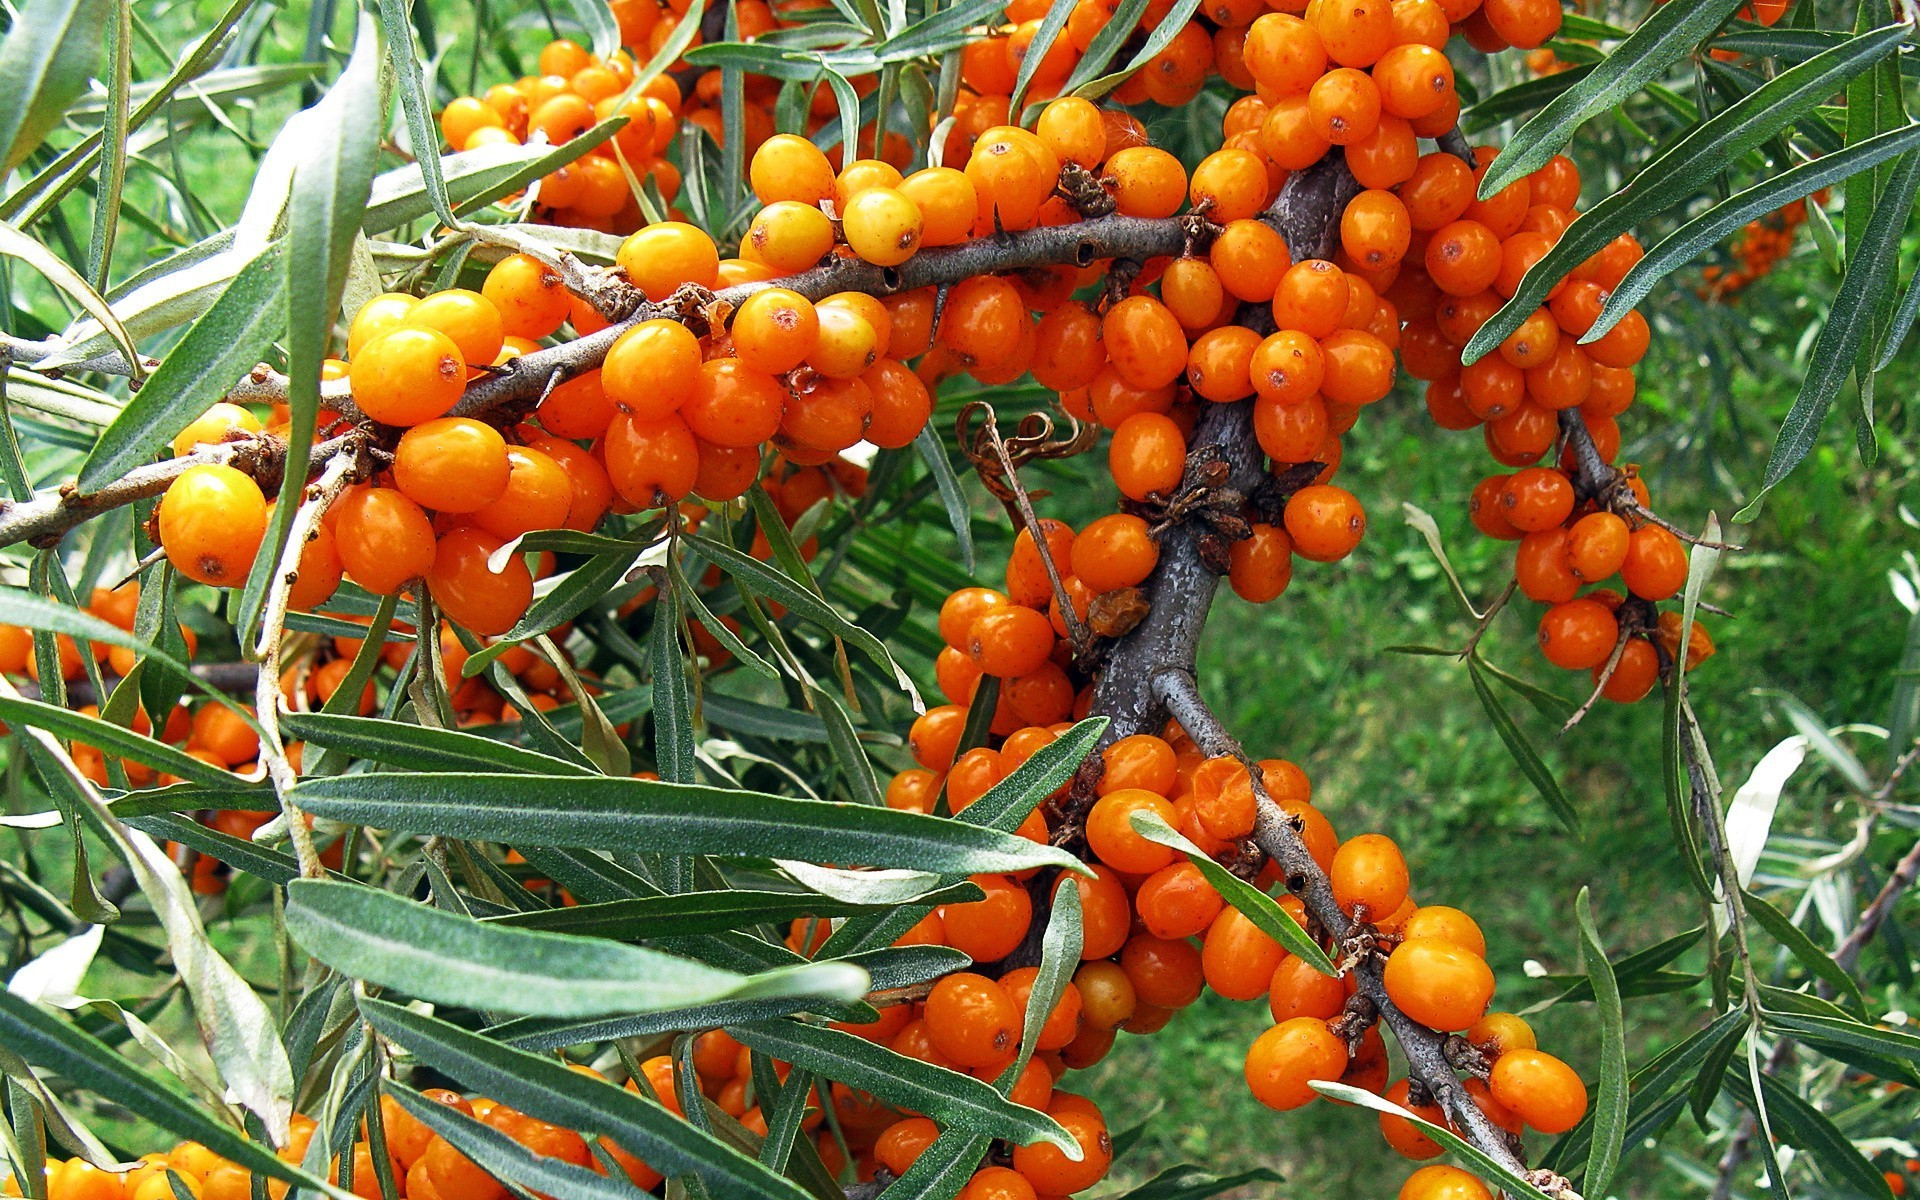 Sea-buckthorn berries.